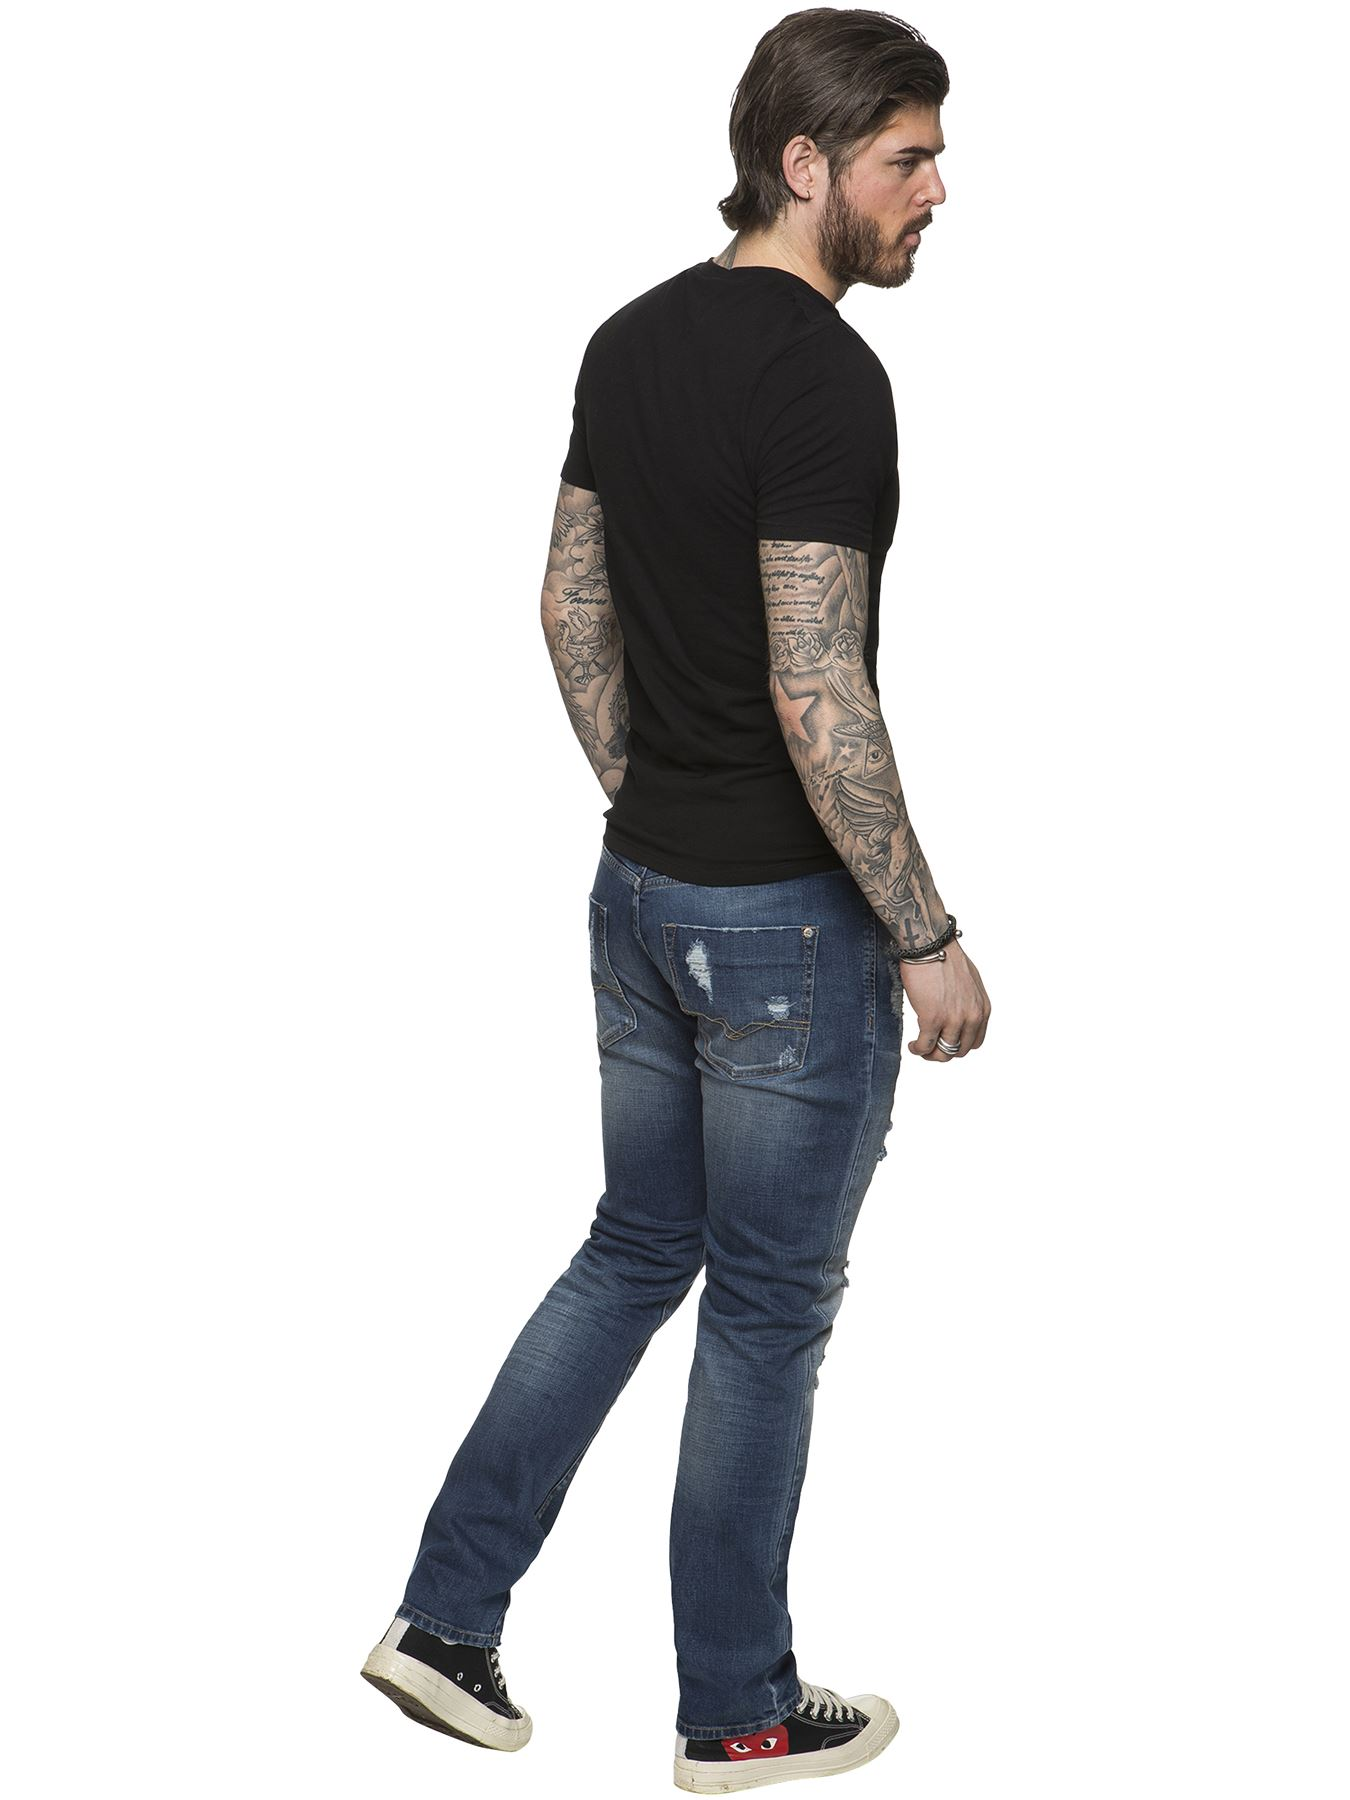 ETO-Designer-Mens-Ripped-Blue-Jeans-Distressed-Denim-Tapered-Fit-Trousers-Pants thumbnail 4